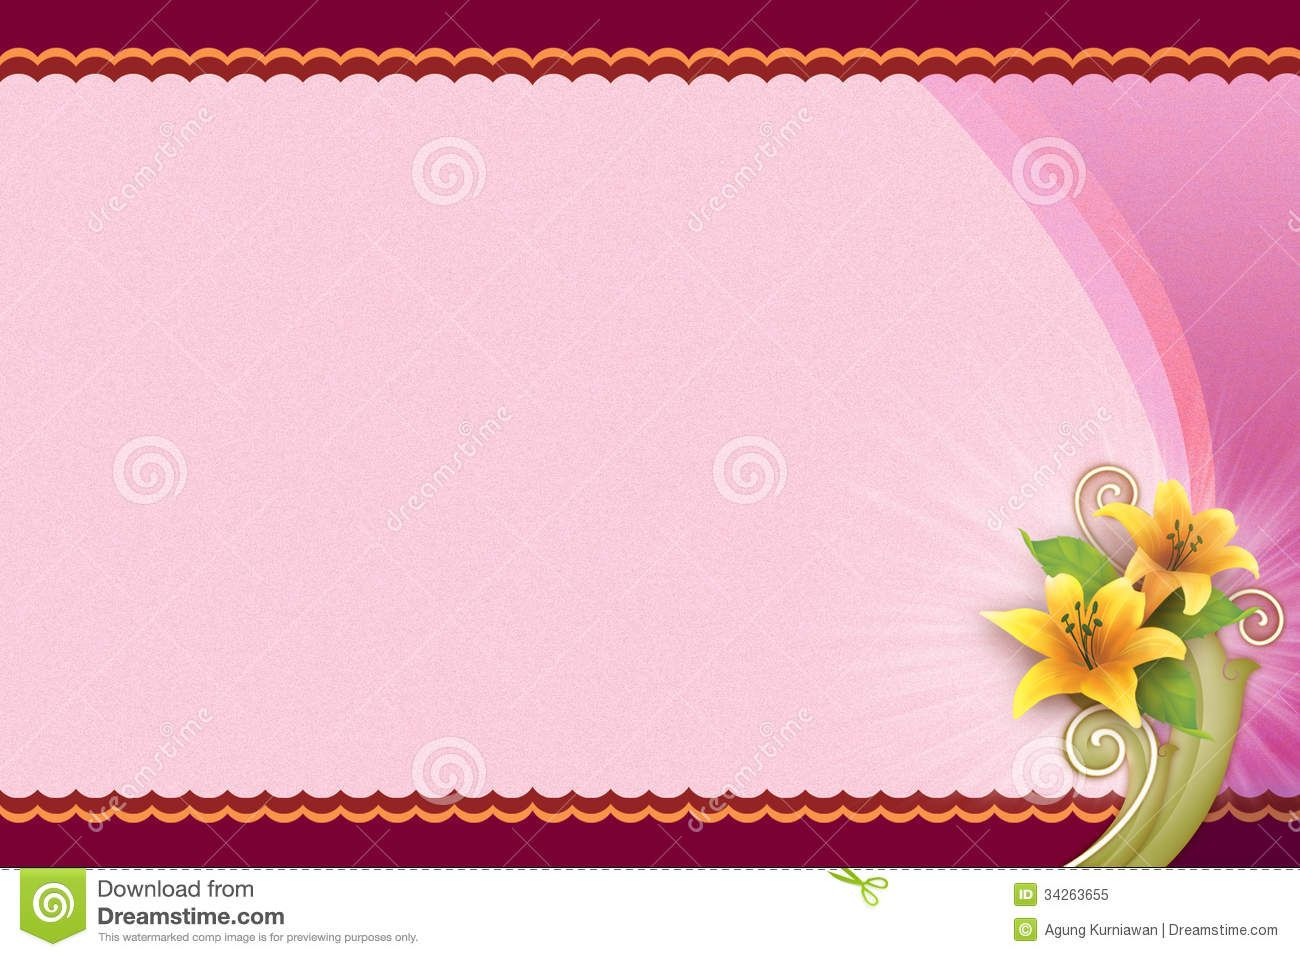 Blank Birthday Card My Birthday Pinterest Birthdays - 21st birthday invitation card background